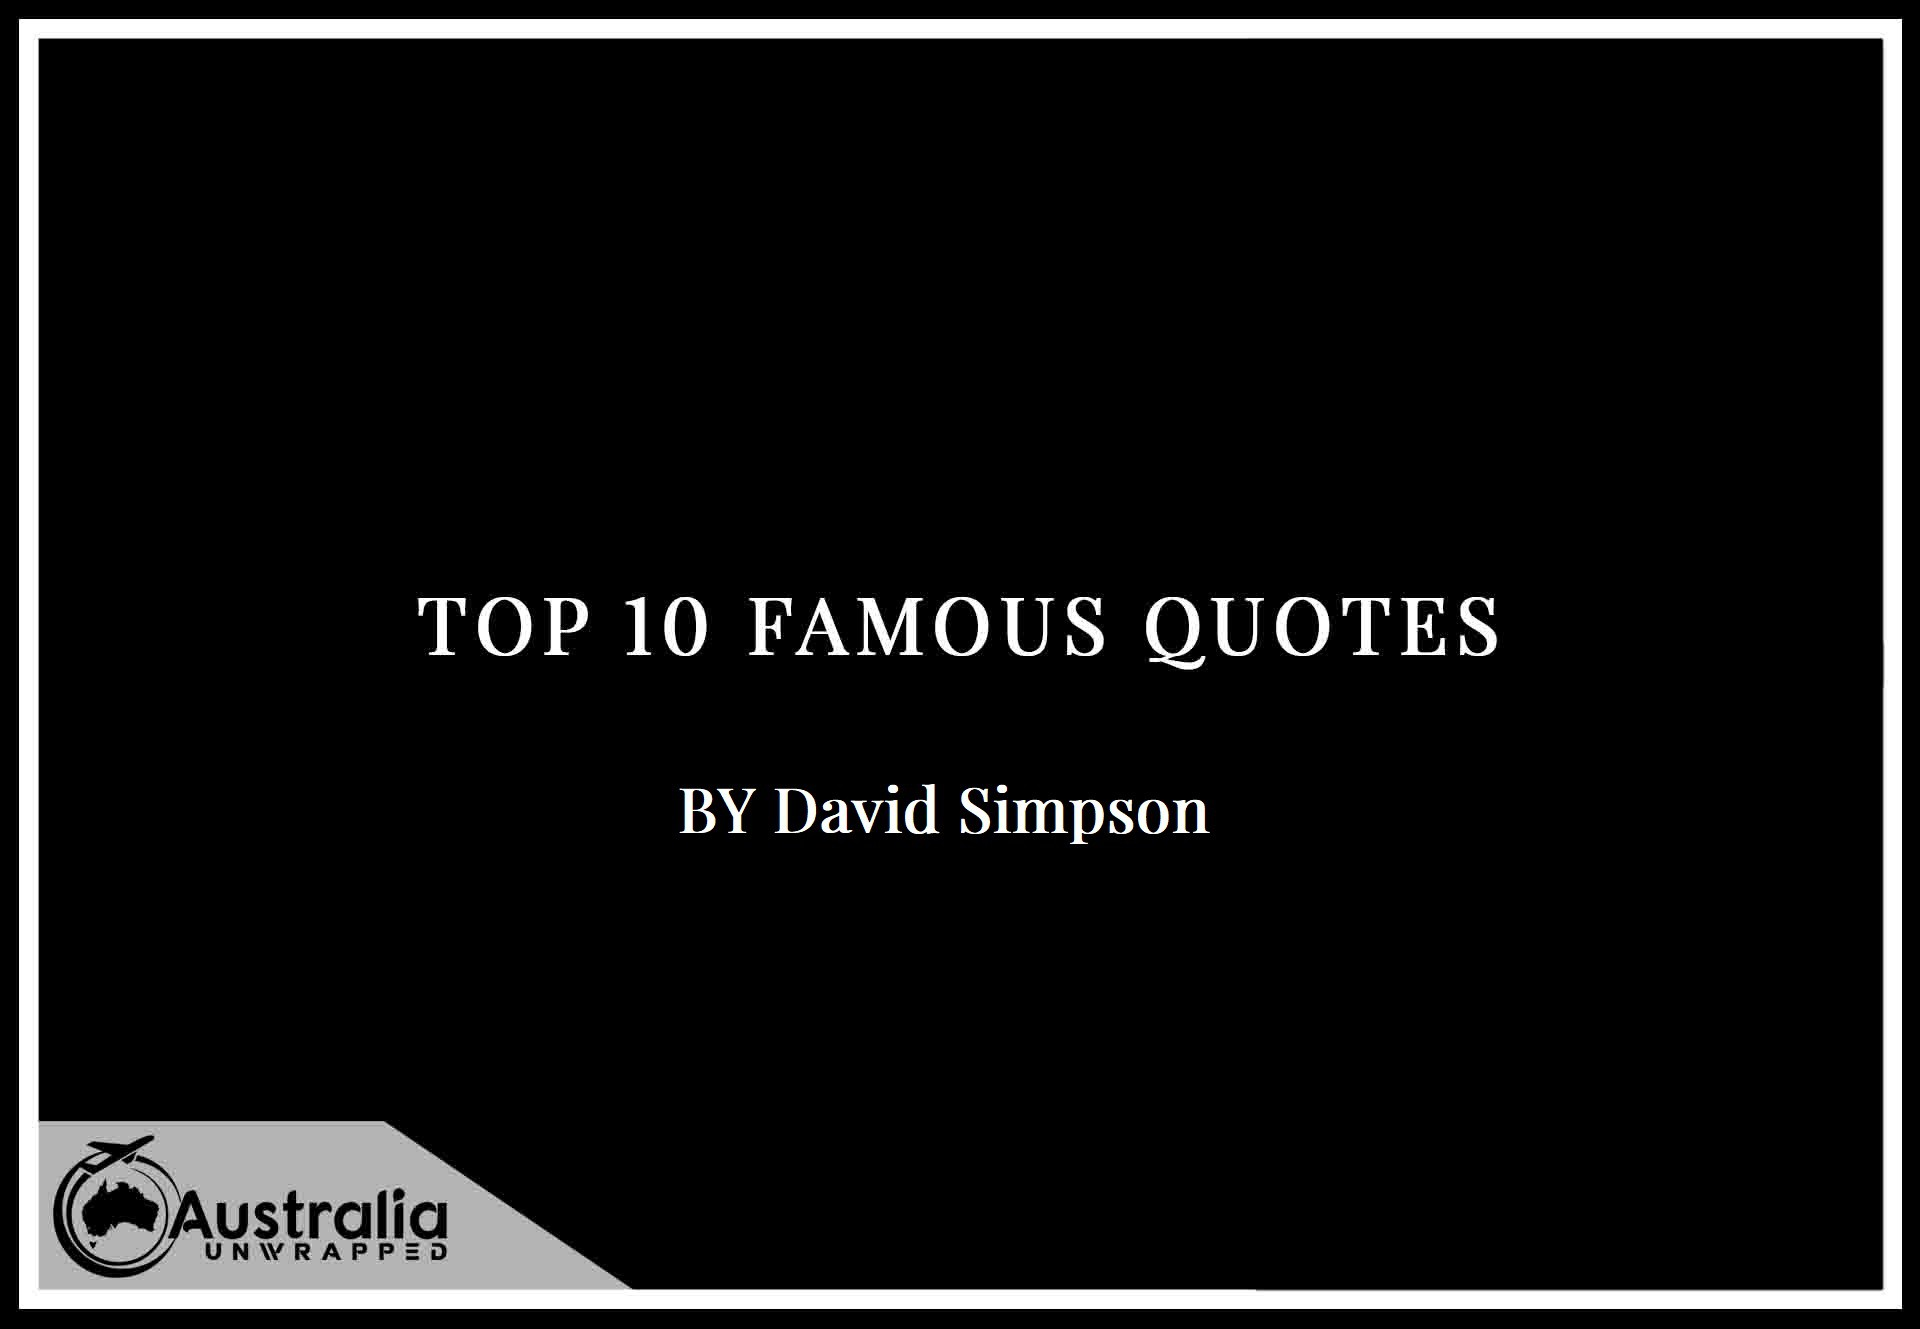 Top 10 Famous Quotes by Author David Simpson